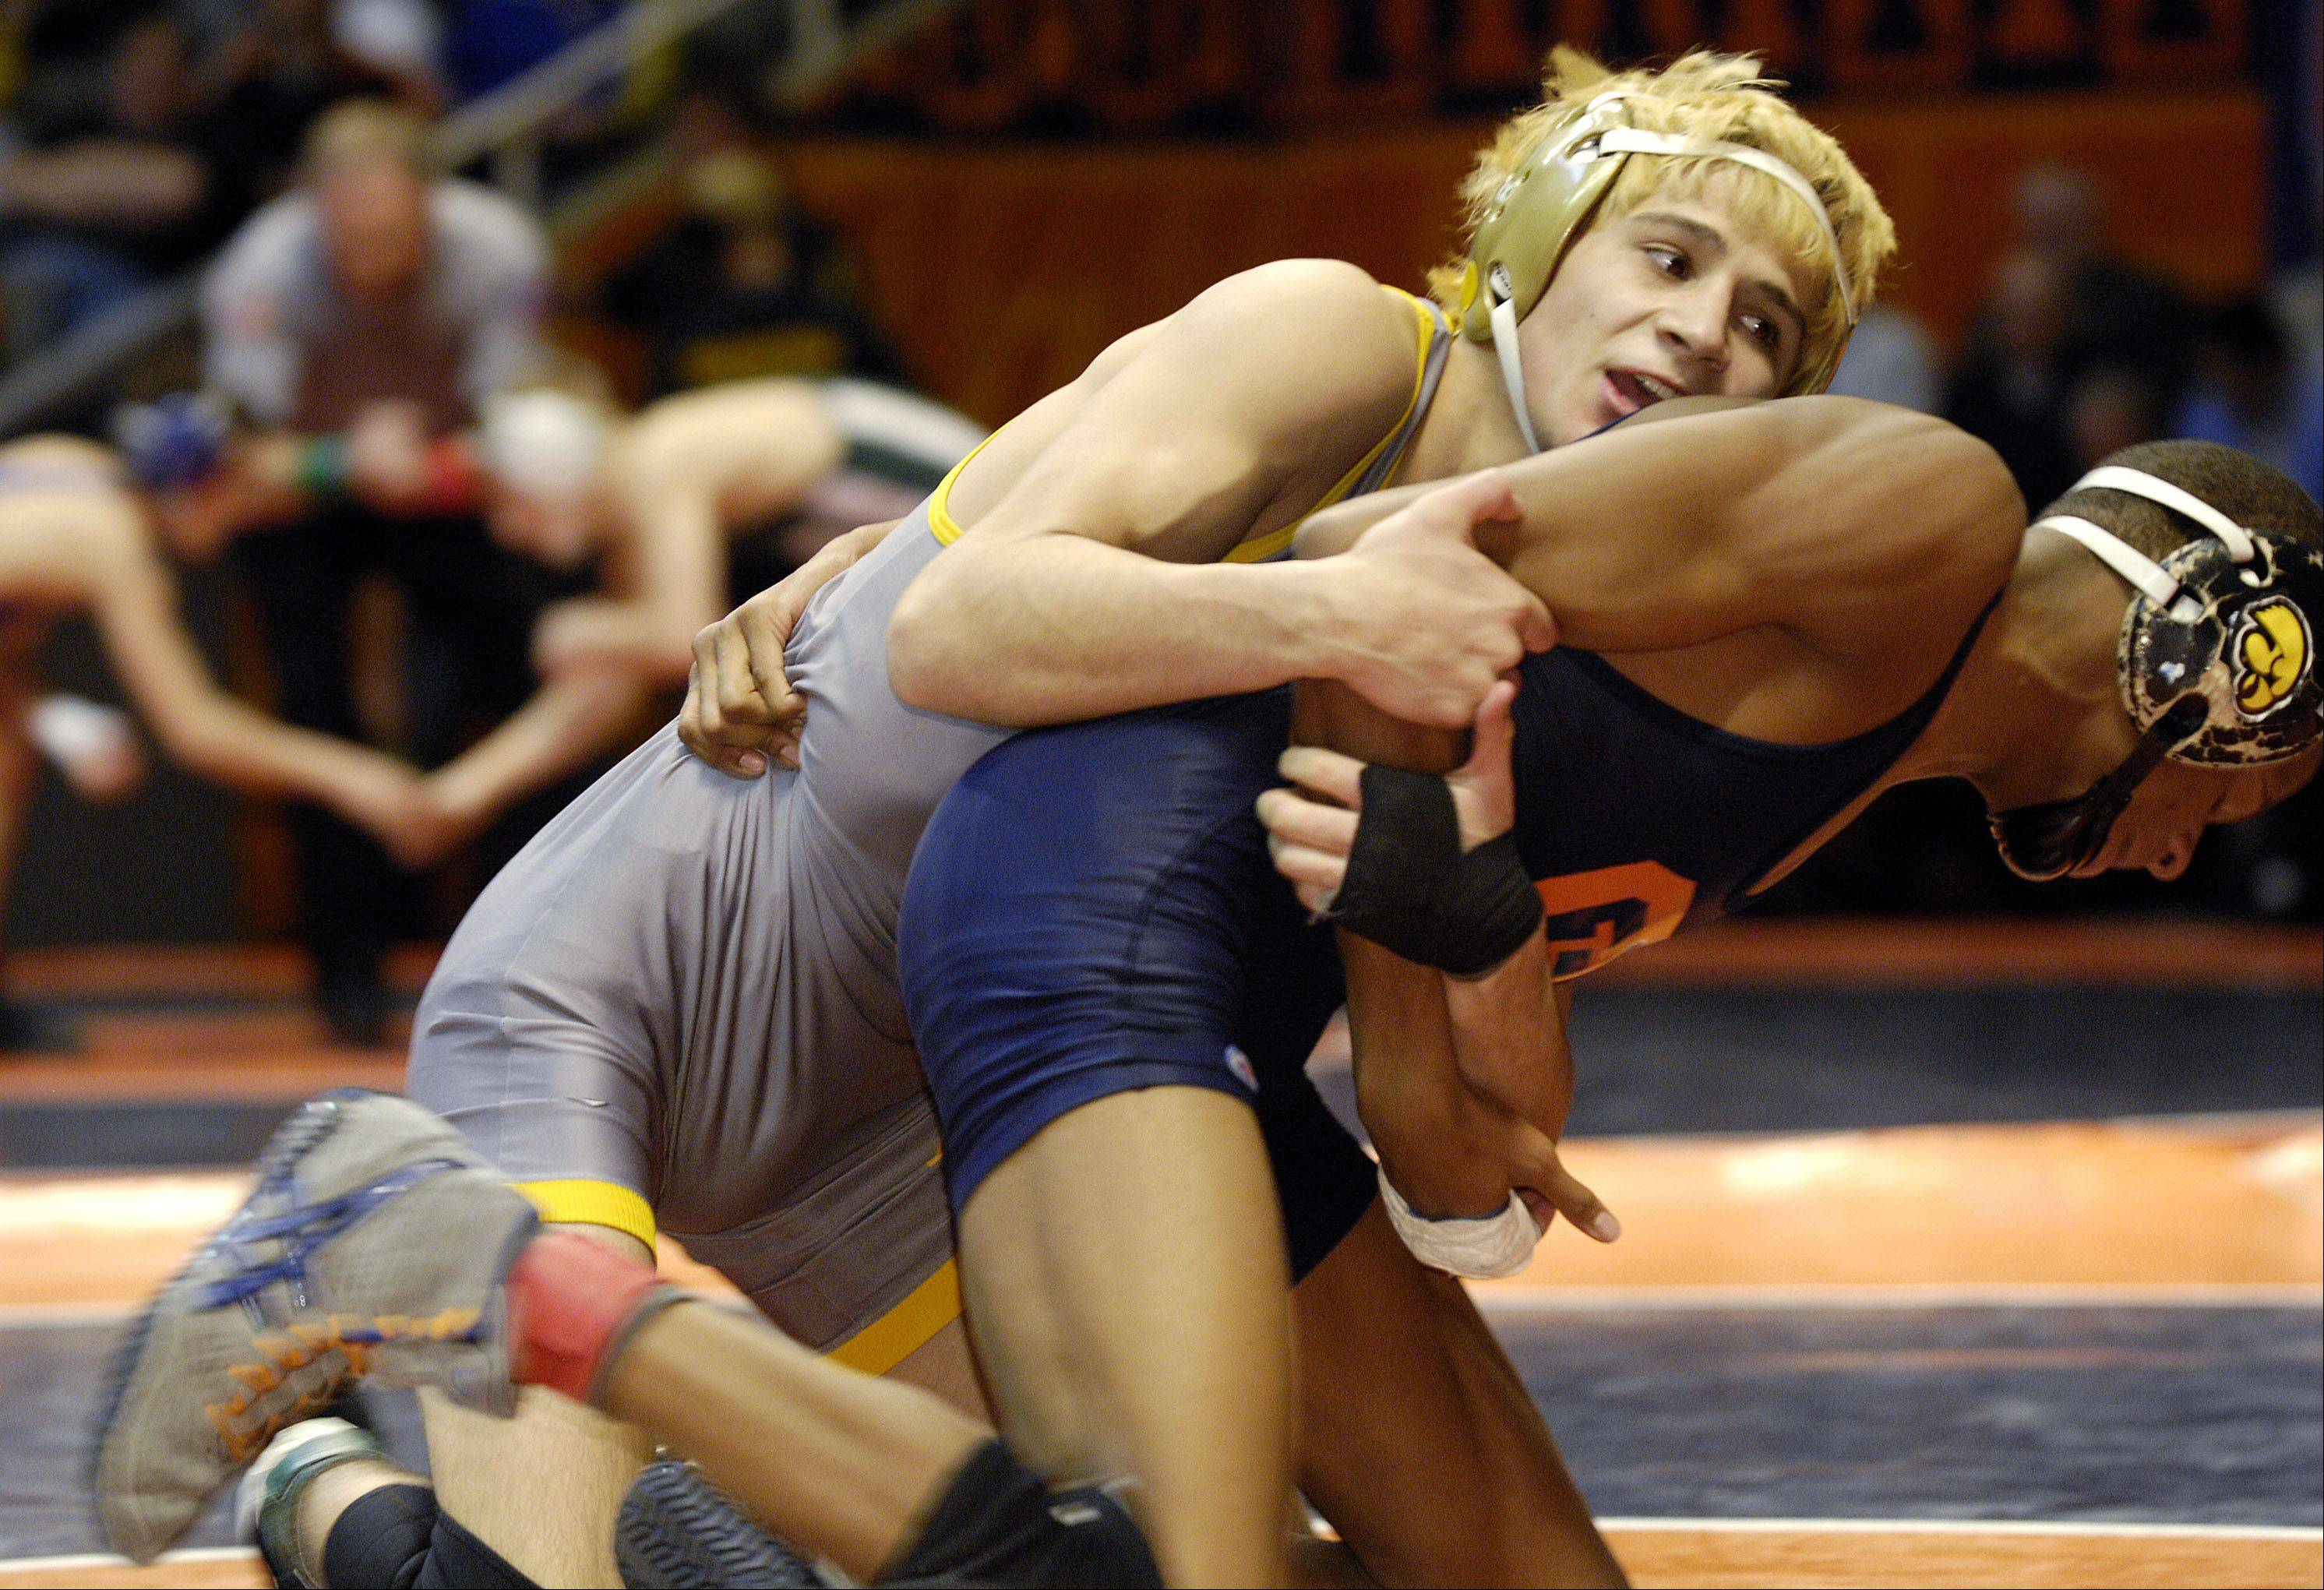 Jered Cortez of Glenbard North defeats Larry Early of Oak Park River Forest during a 3A 120-pound semifinal bout at the 2012 IHSA wrestling state finals in Champaign.